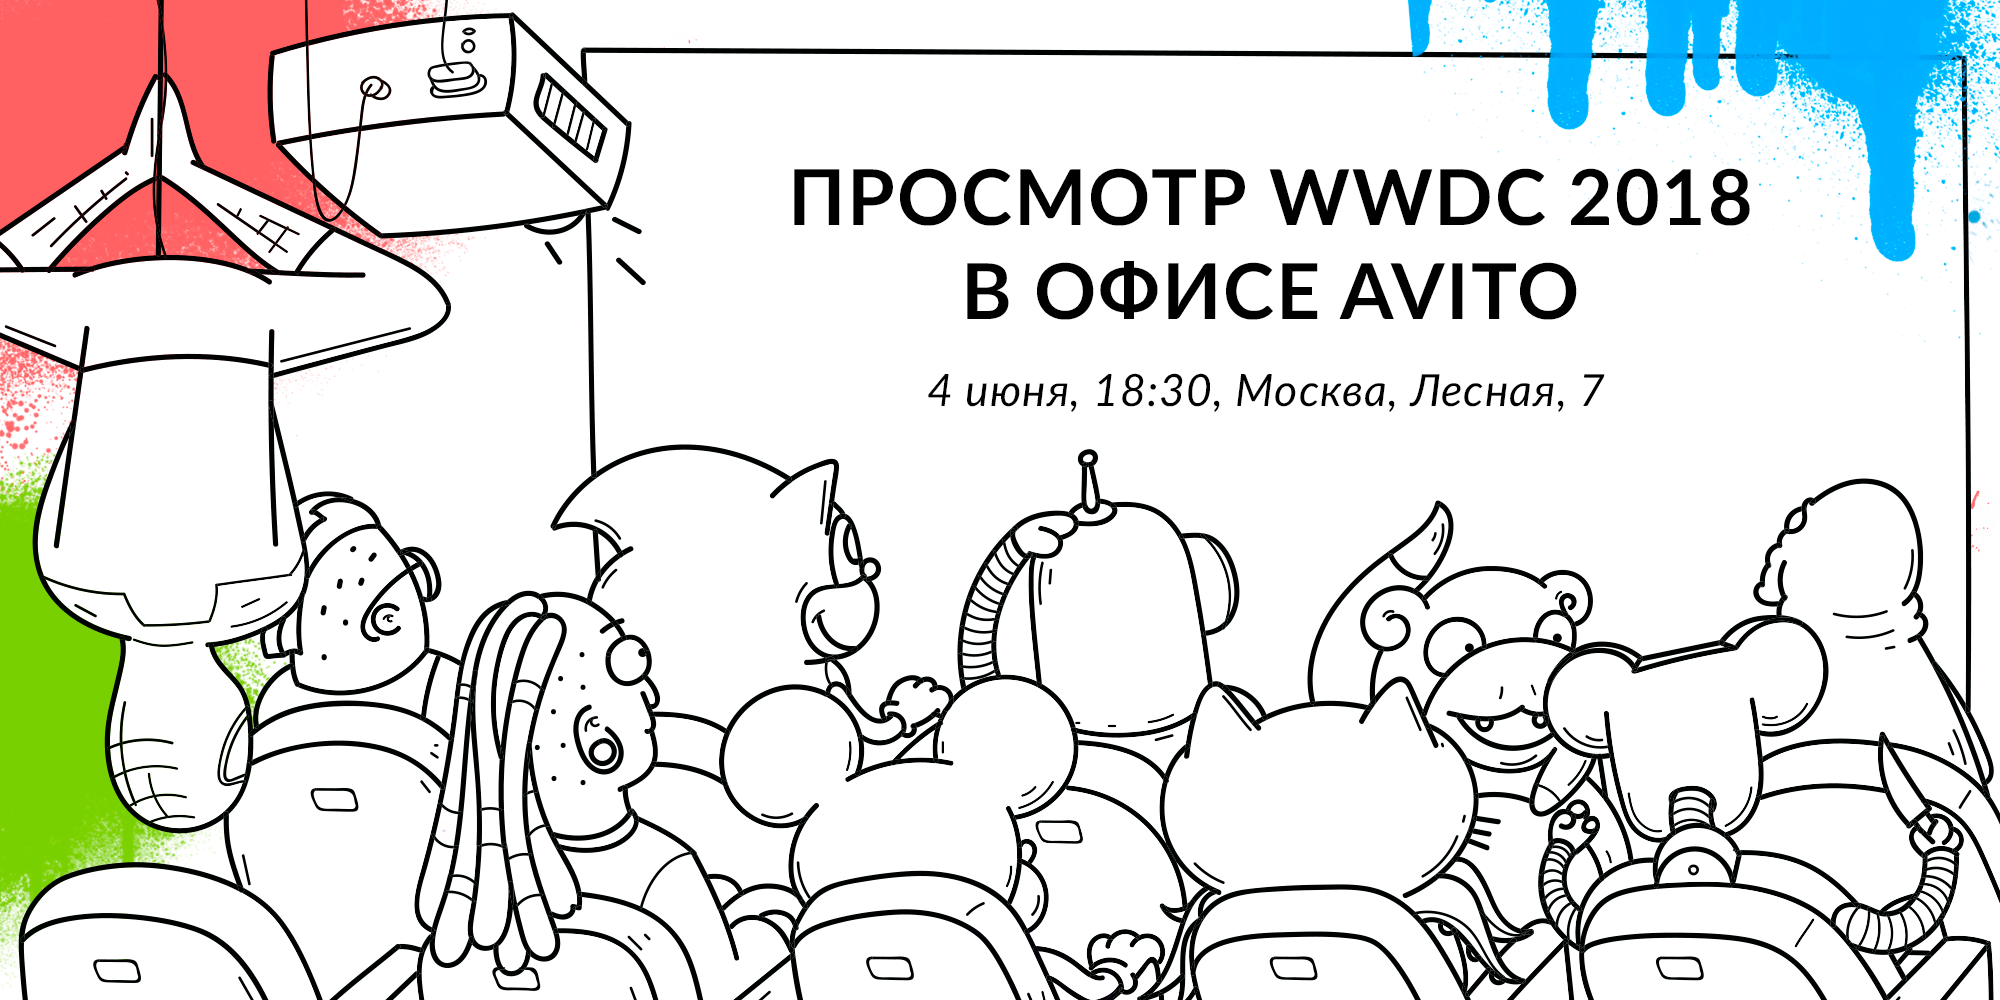 Express Moscow - San Jose: a joint viewing of WWDC 2018 in Avito's office on June 4